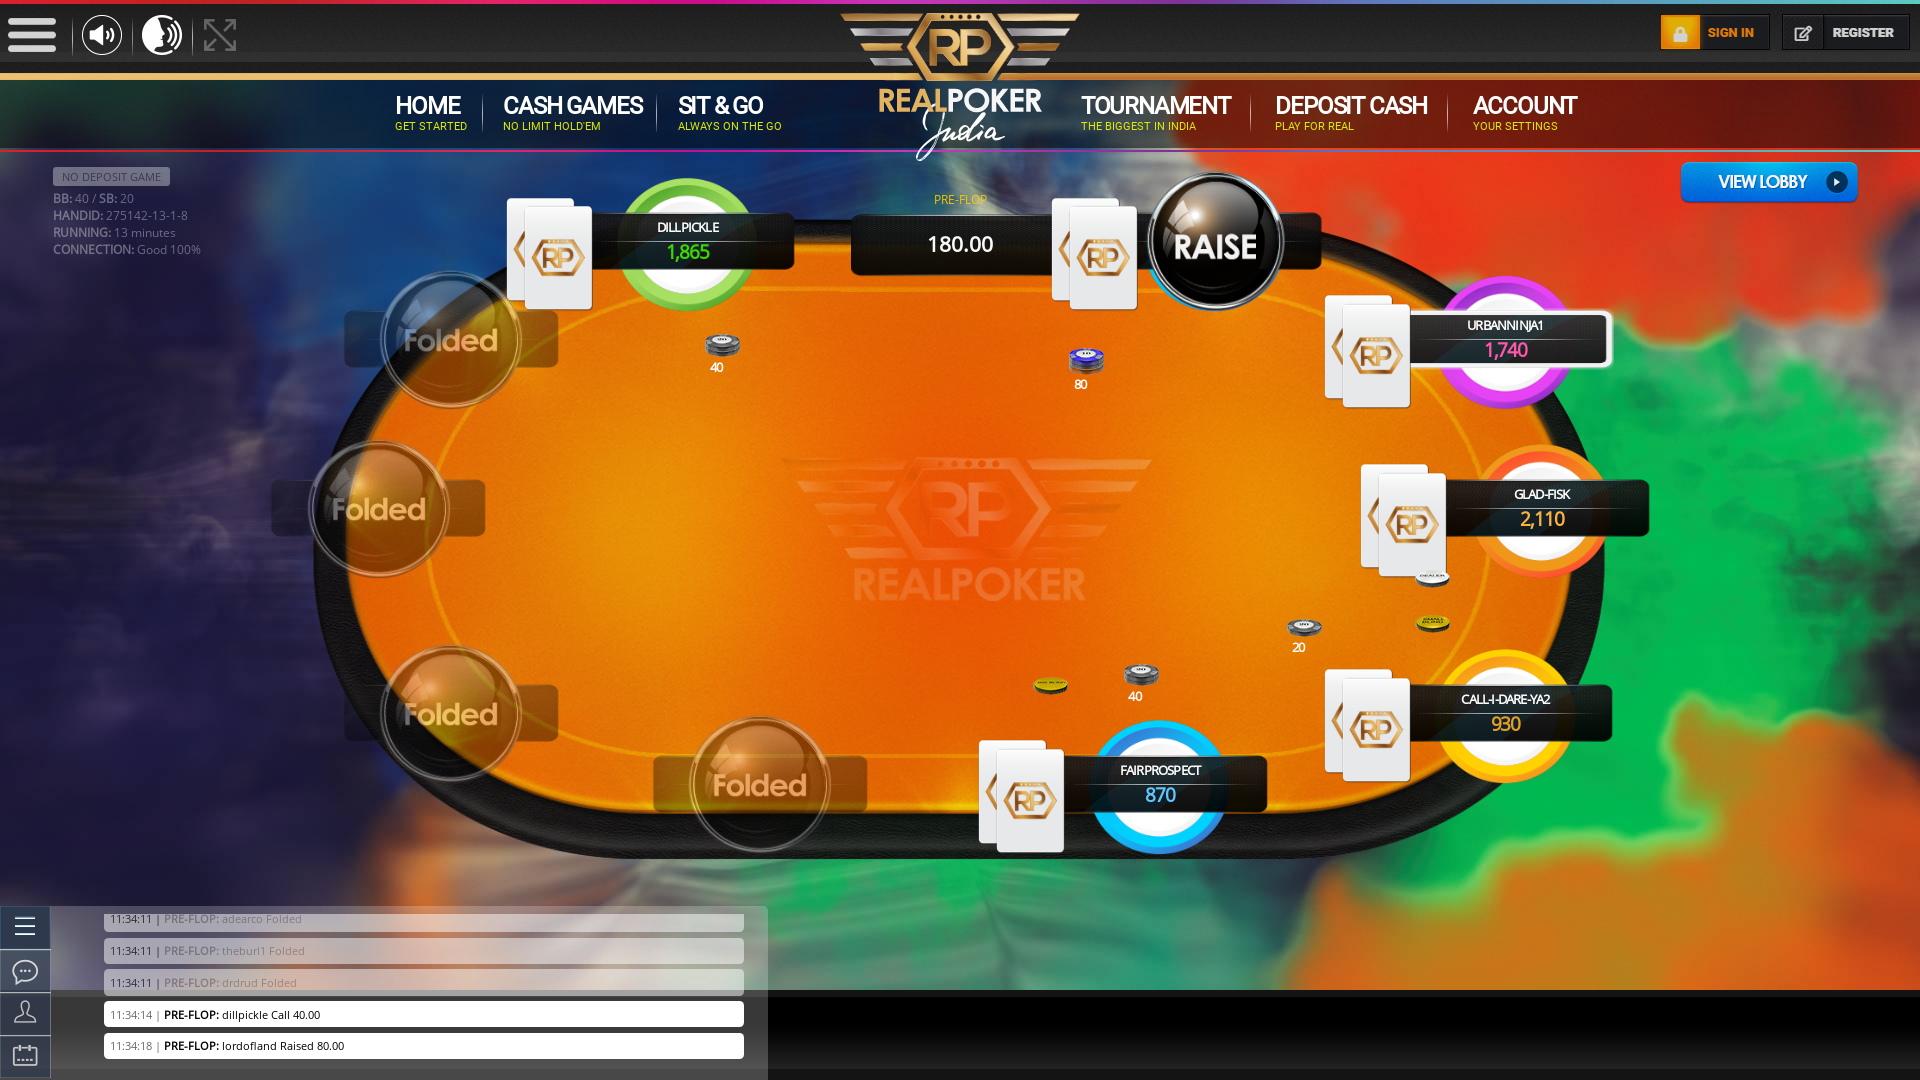 Salt Lake City, Kolkata Online Poker from November